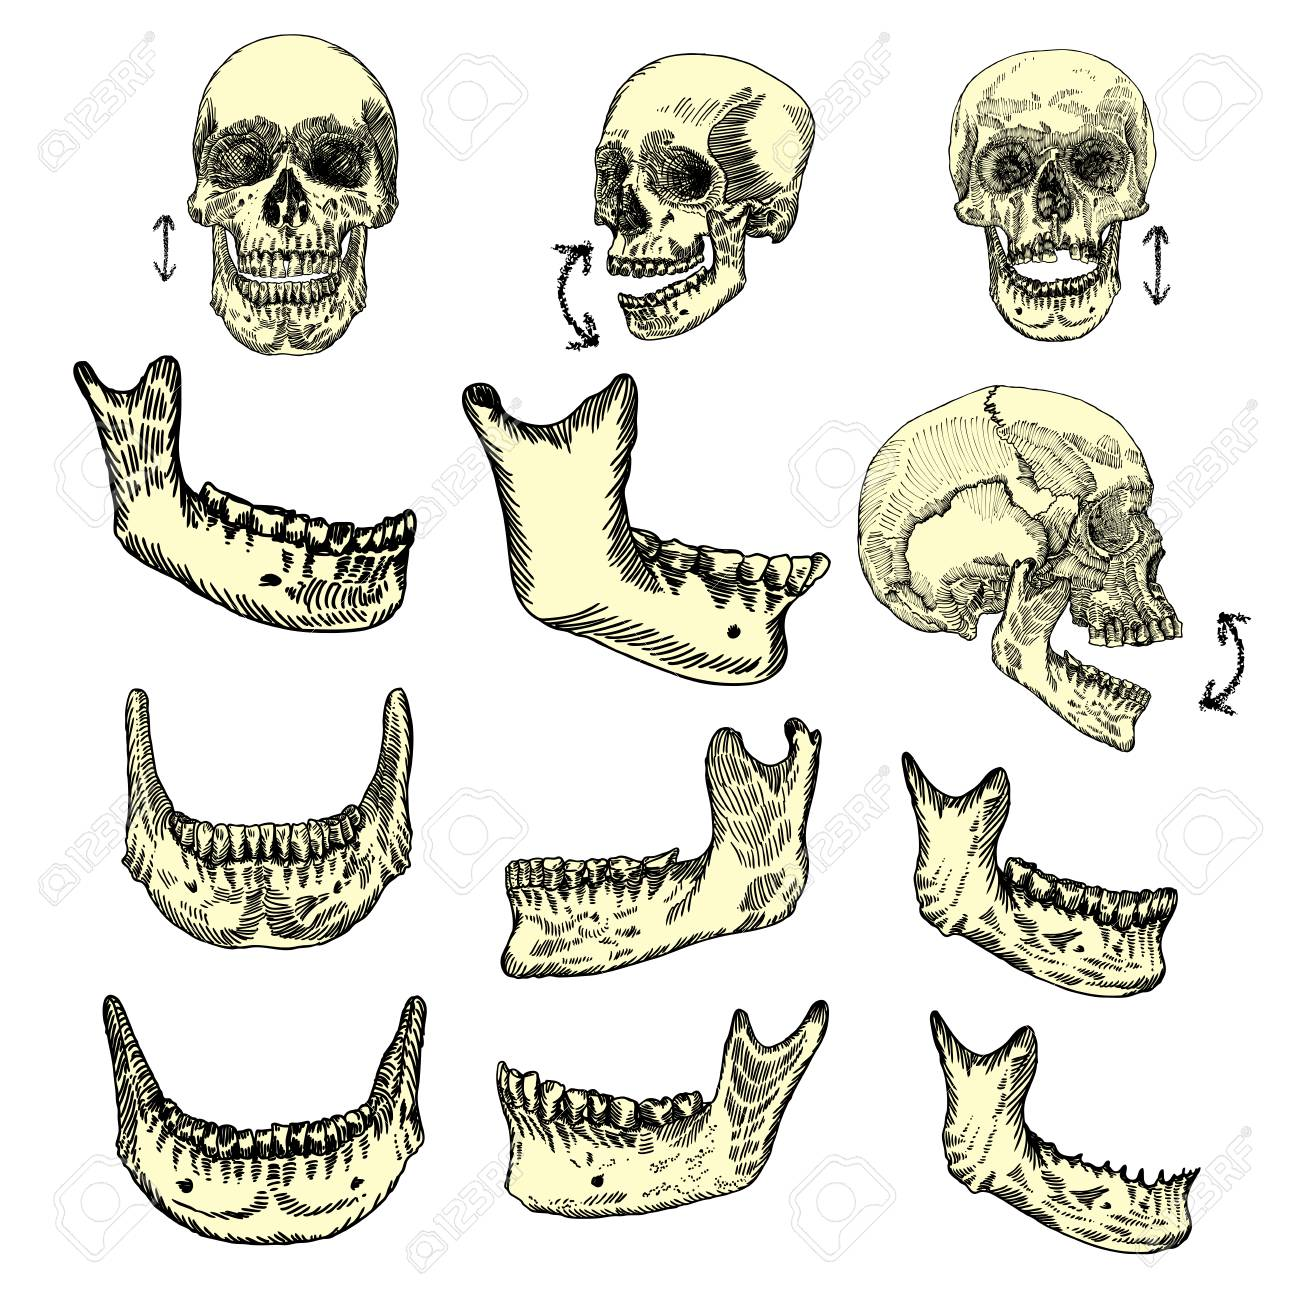 70461519 human skull bones drawing set creation set skull and lower jaw moving up and down skulls from differ human skull bones drawing set creation set skull and lower jaw